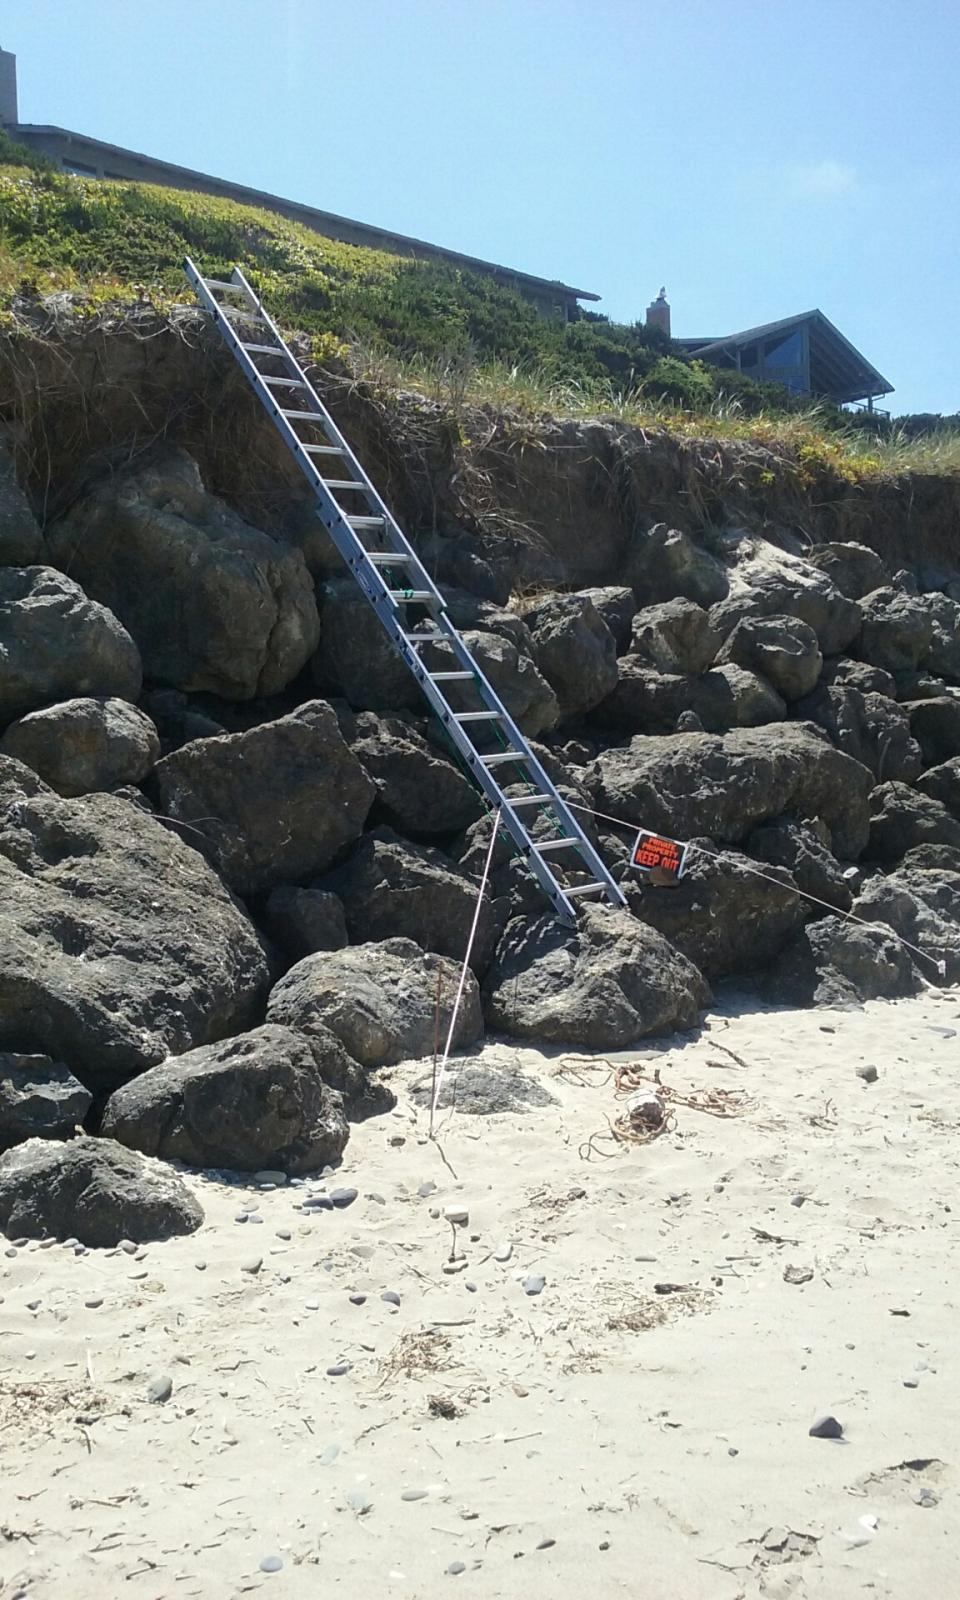 Ladder to private home.